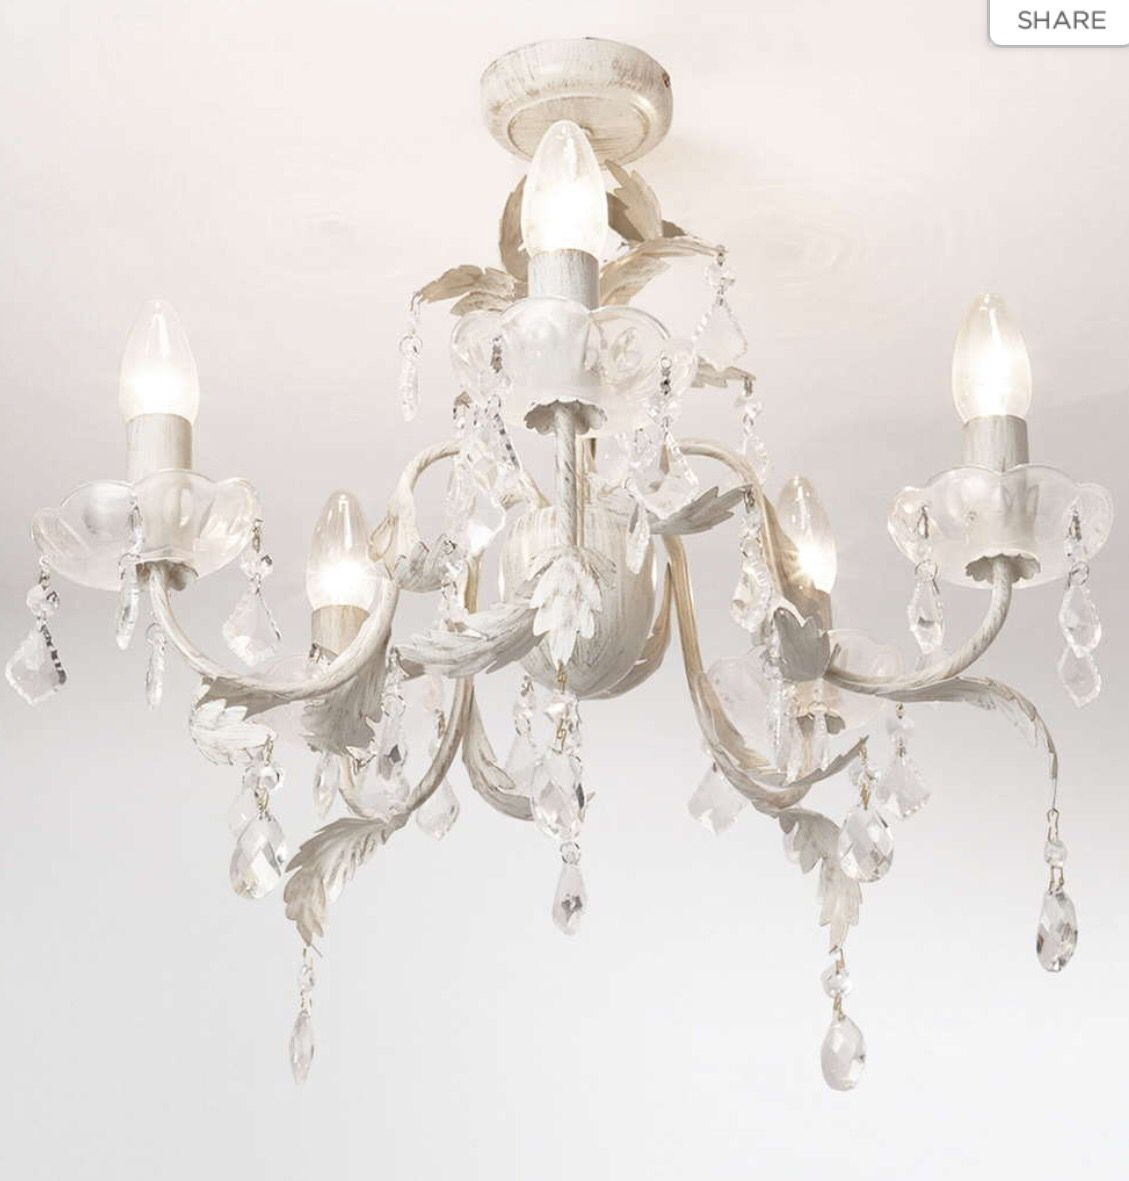 Shabby chic glamorous chandelier lighting ideas pinterest juliette 5 light flush chandelier creamgold creamgold from bhsadd a quintessentially french accent to your drawing or dining room mozeypictures Images